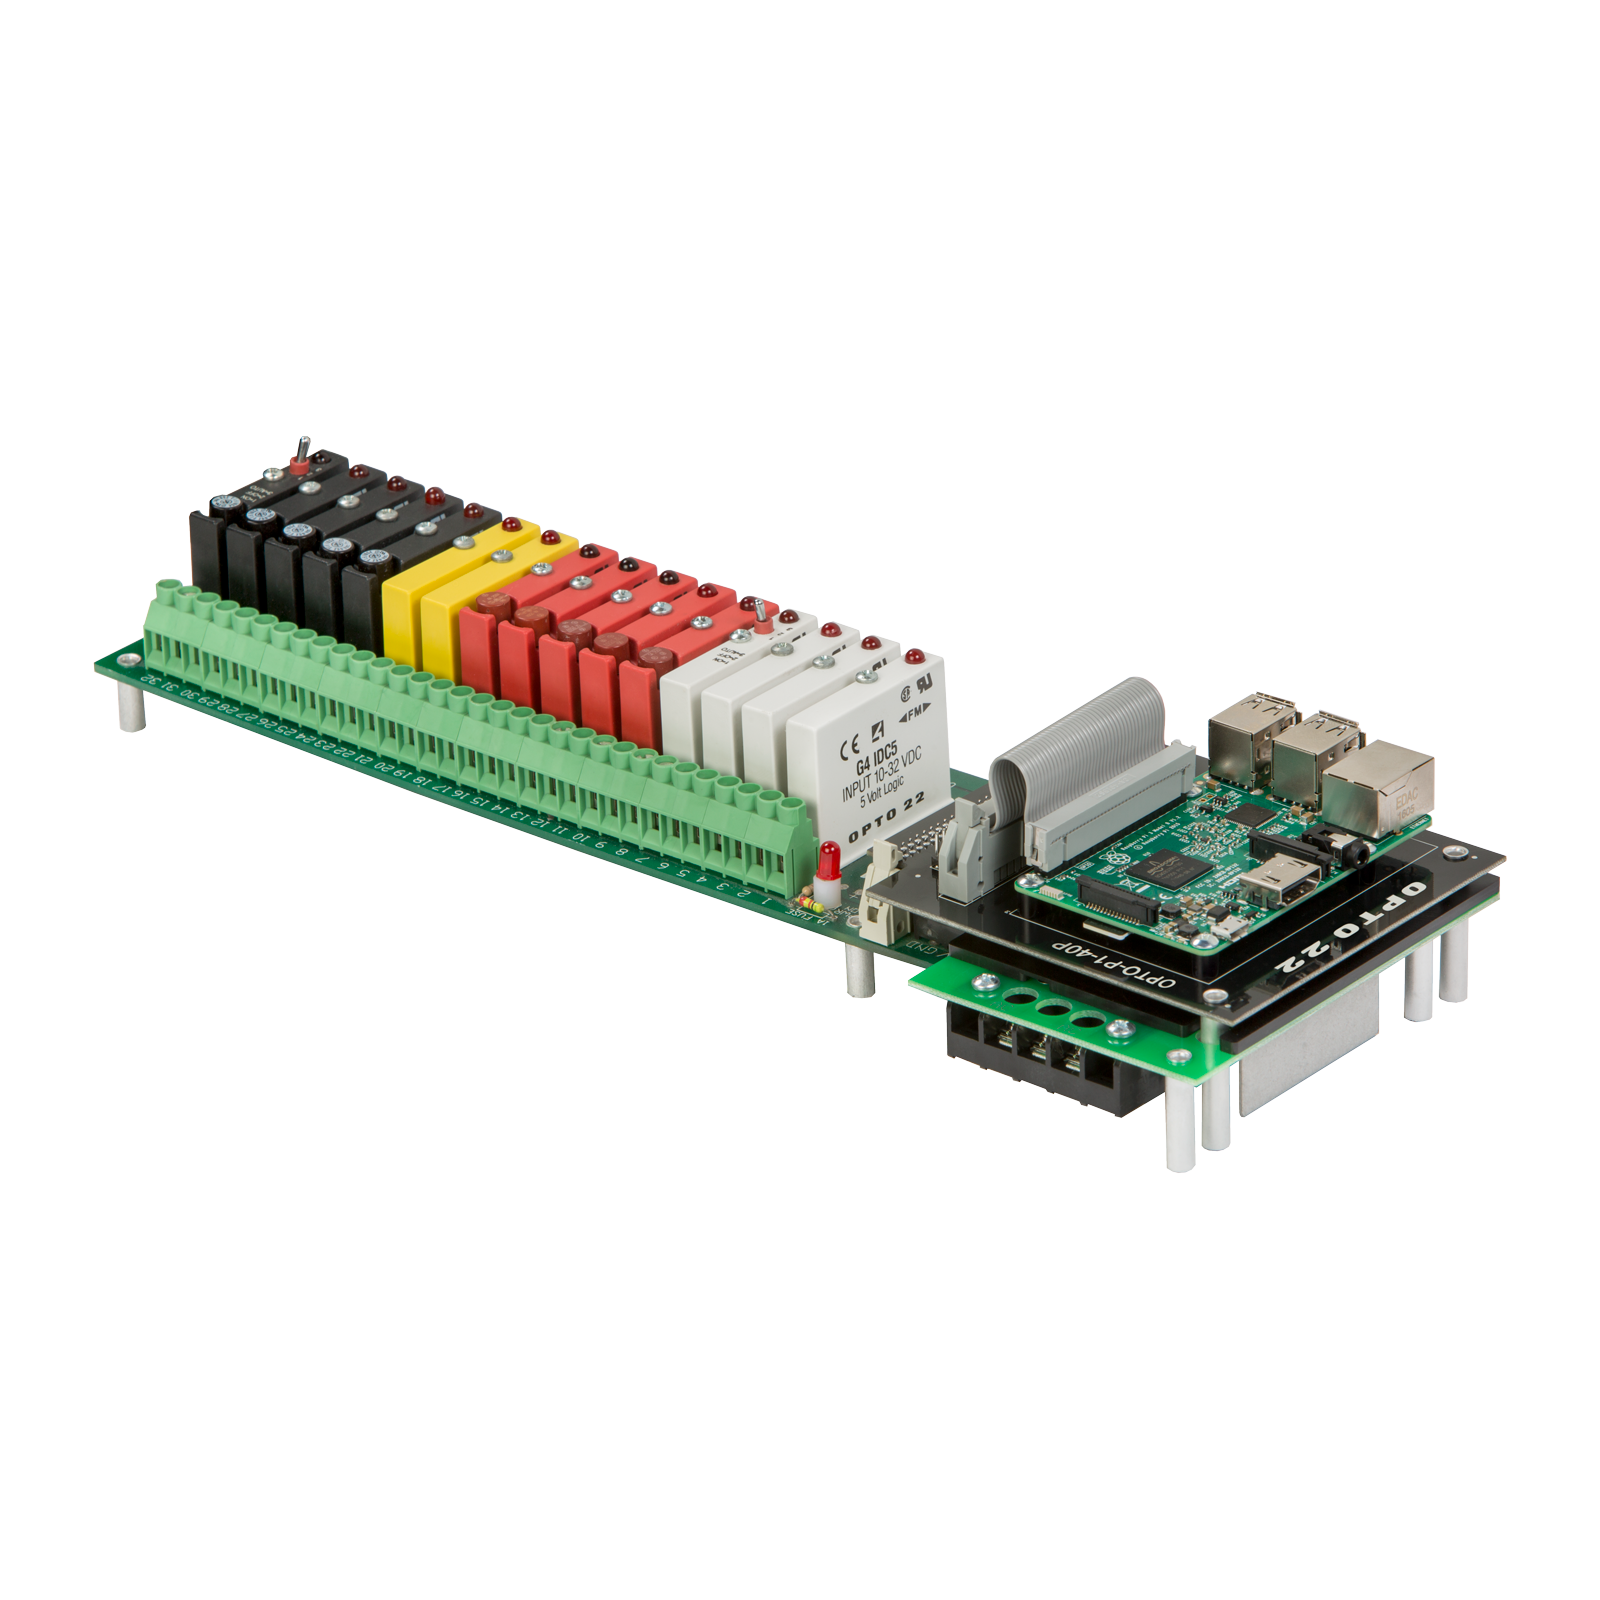 Drivers Relays And Solid State Mbed Piezo Driver Led Warning Indicator Circuit Electronic A Board With Space For Assorted Opto22 I O Modules Small Computer Such As Raspberry Pi Can Add Iot Features To Industrial Control